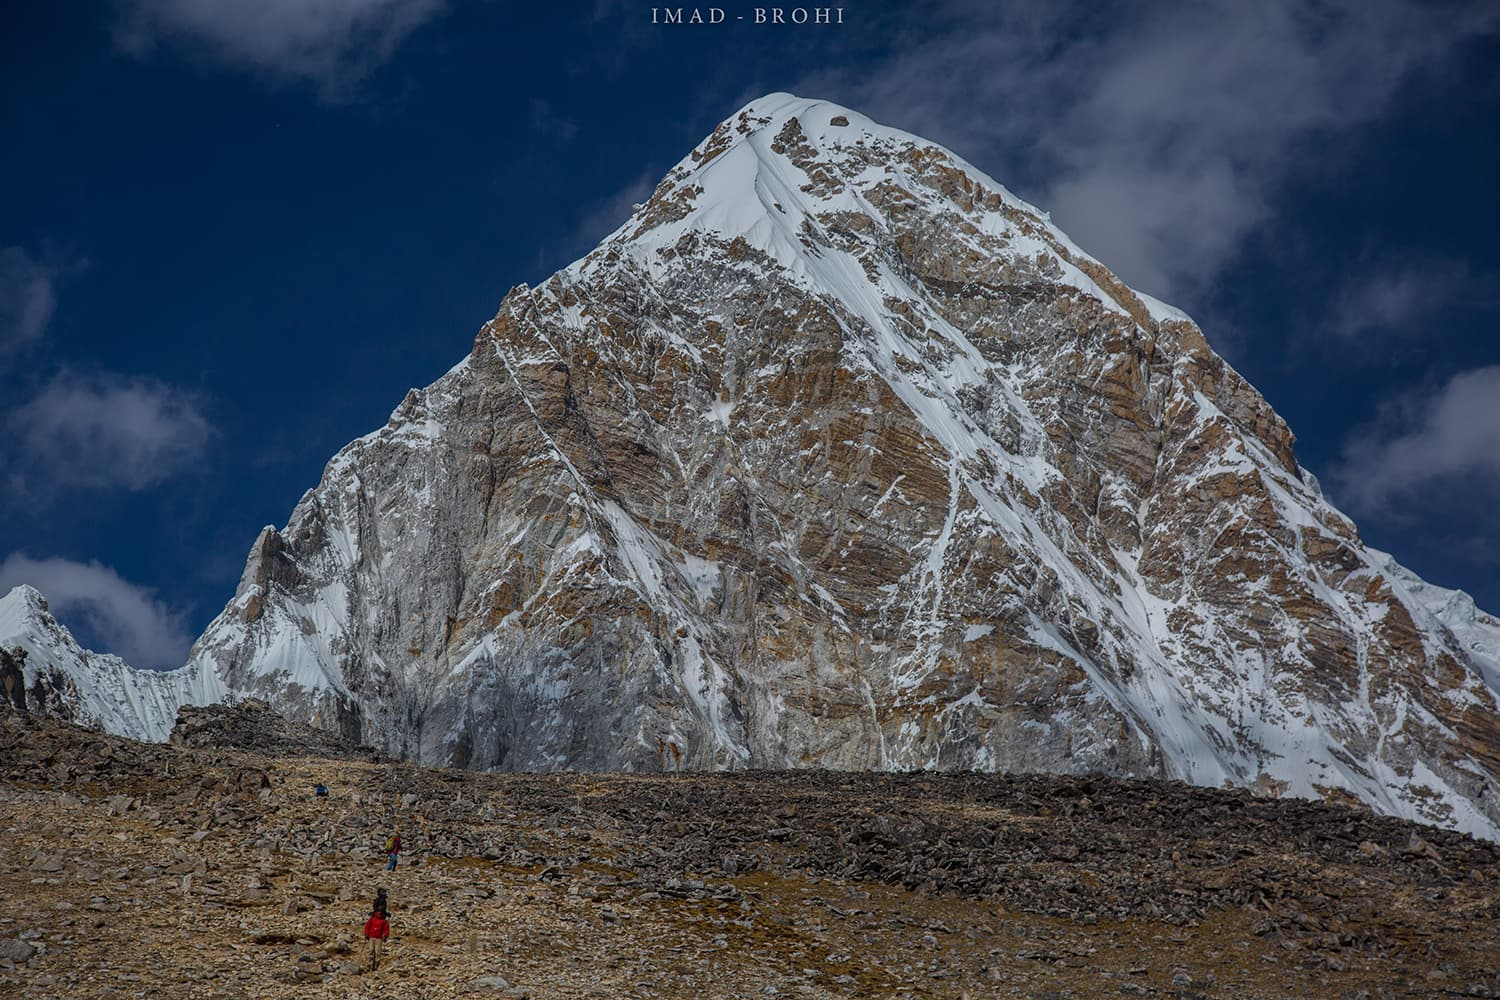 Day 10: Approaching the Kala Pathar (5,650m) summit with Pumori (7,160m) in the background.